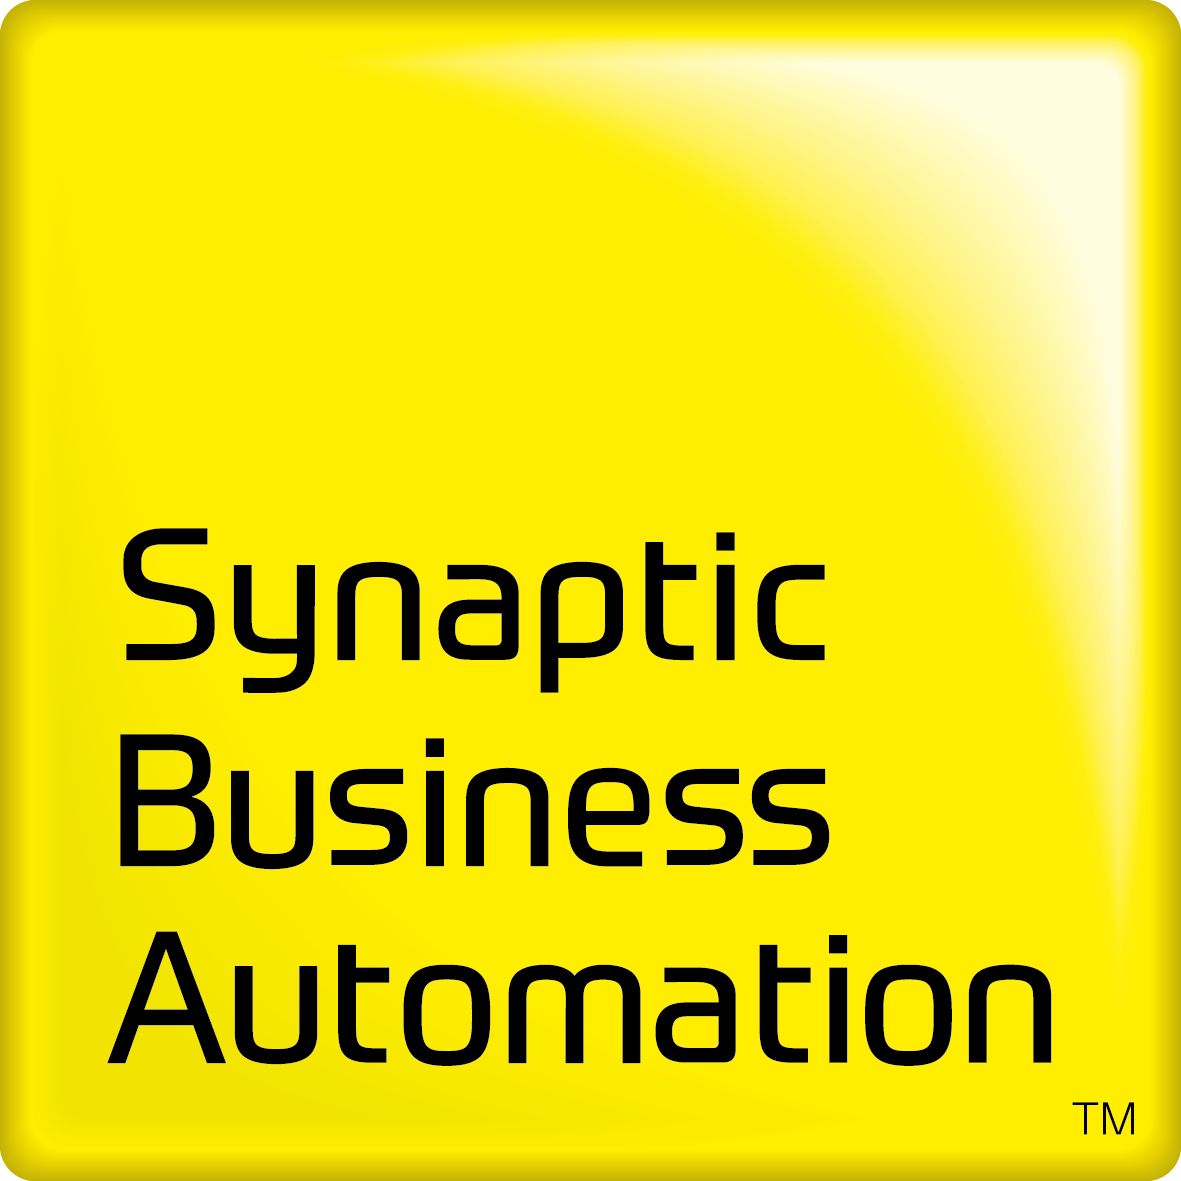 Synaptic Business Automation Logo in Colour